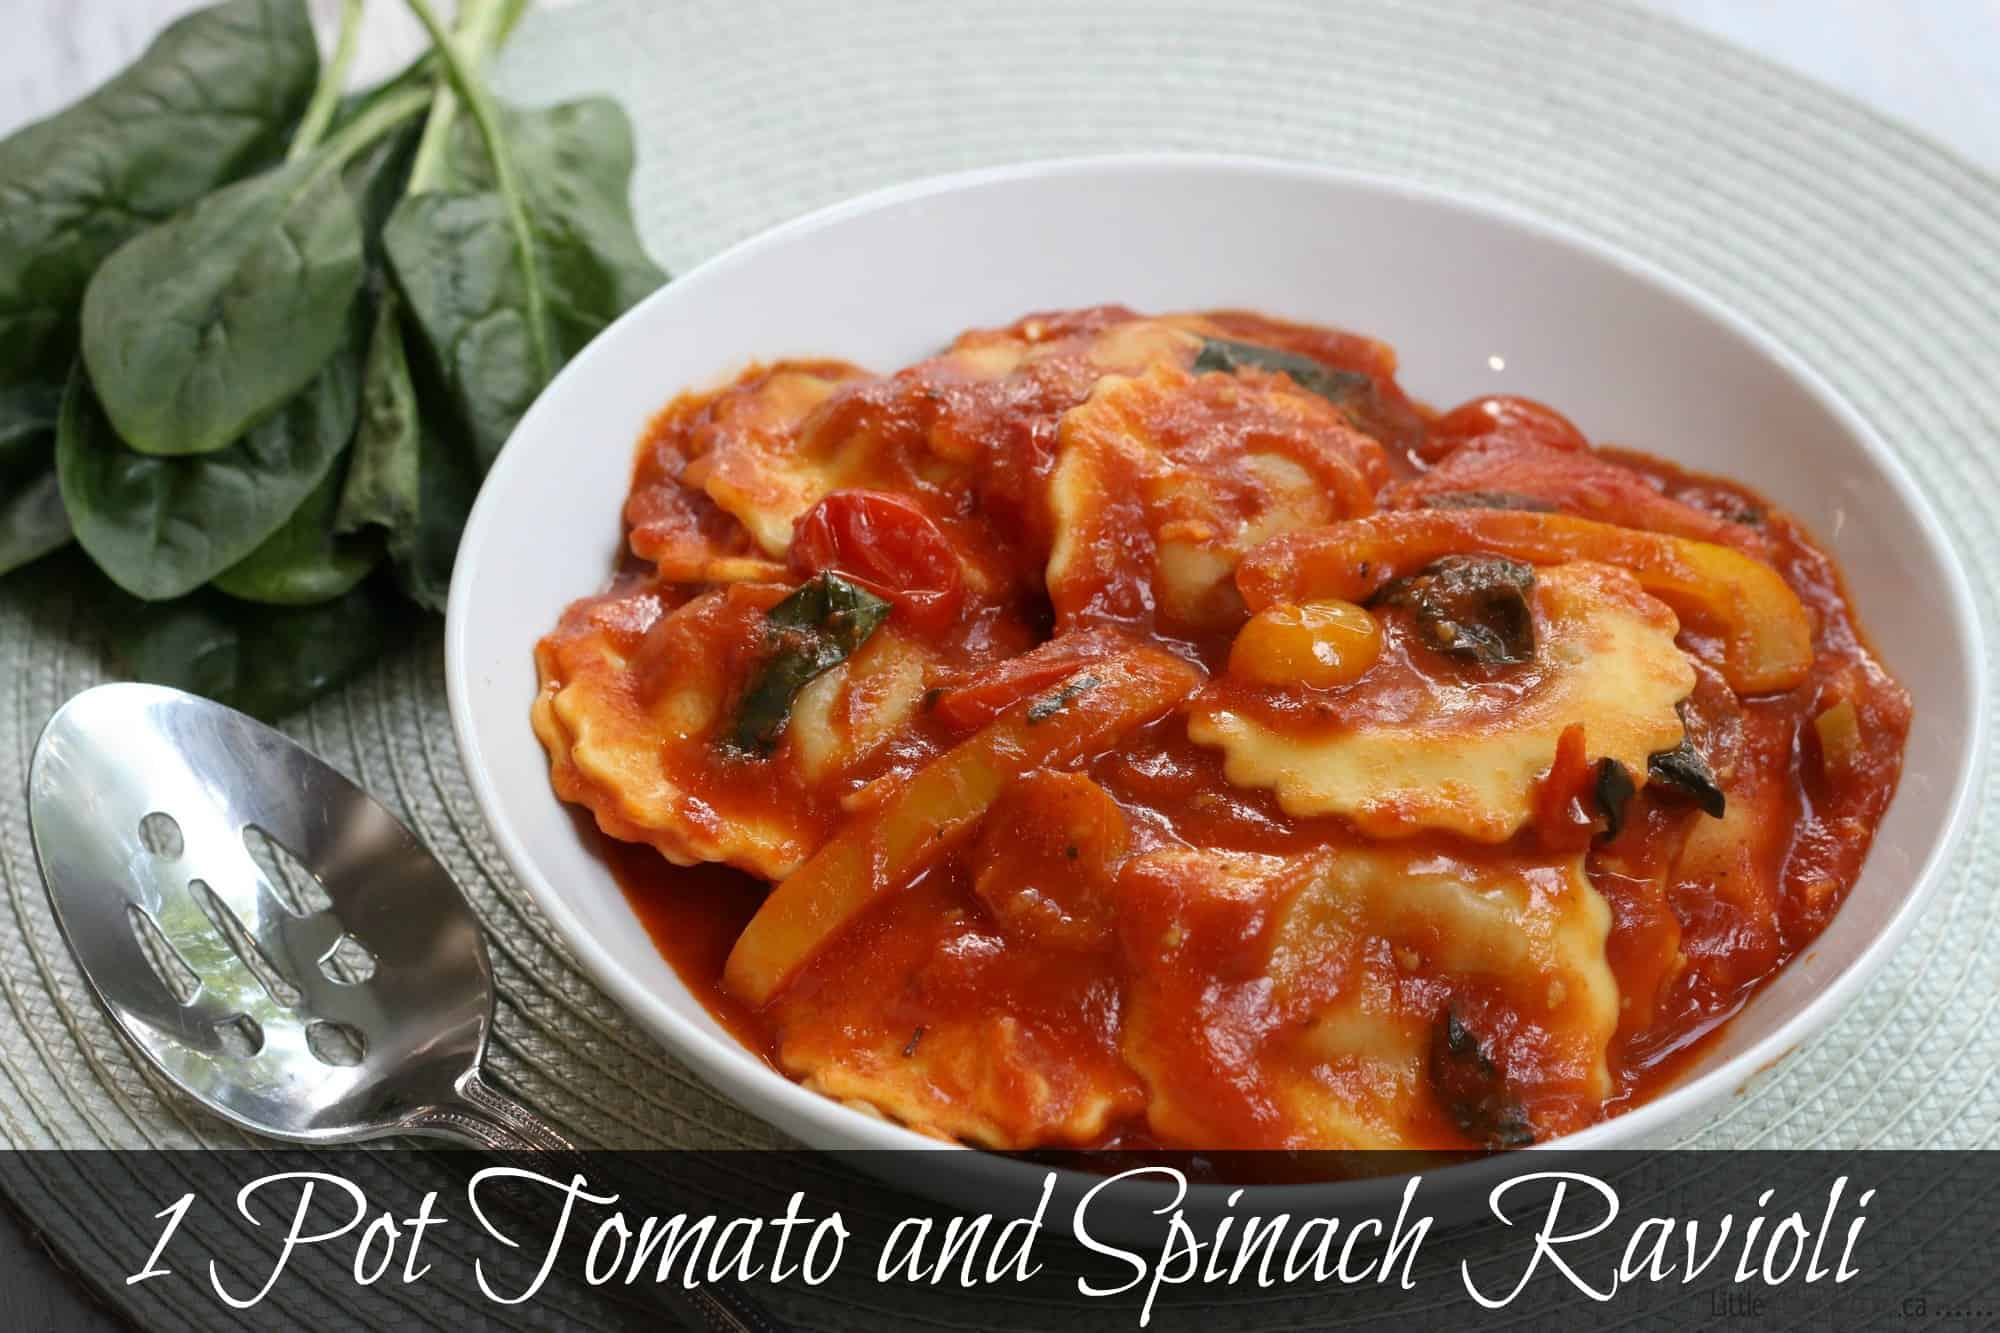 Easy Healthy Dinner Recipe: 1 Pot Tomato and Spinach Ravioli